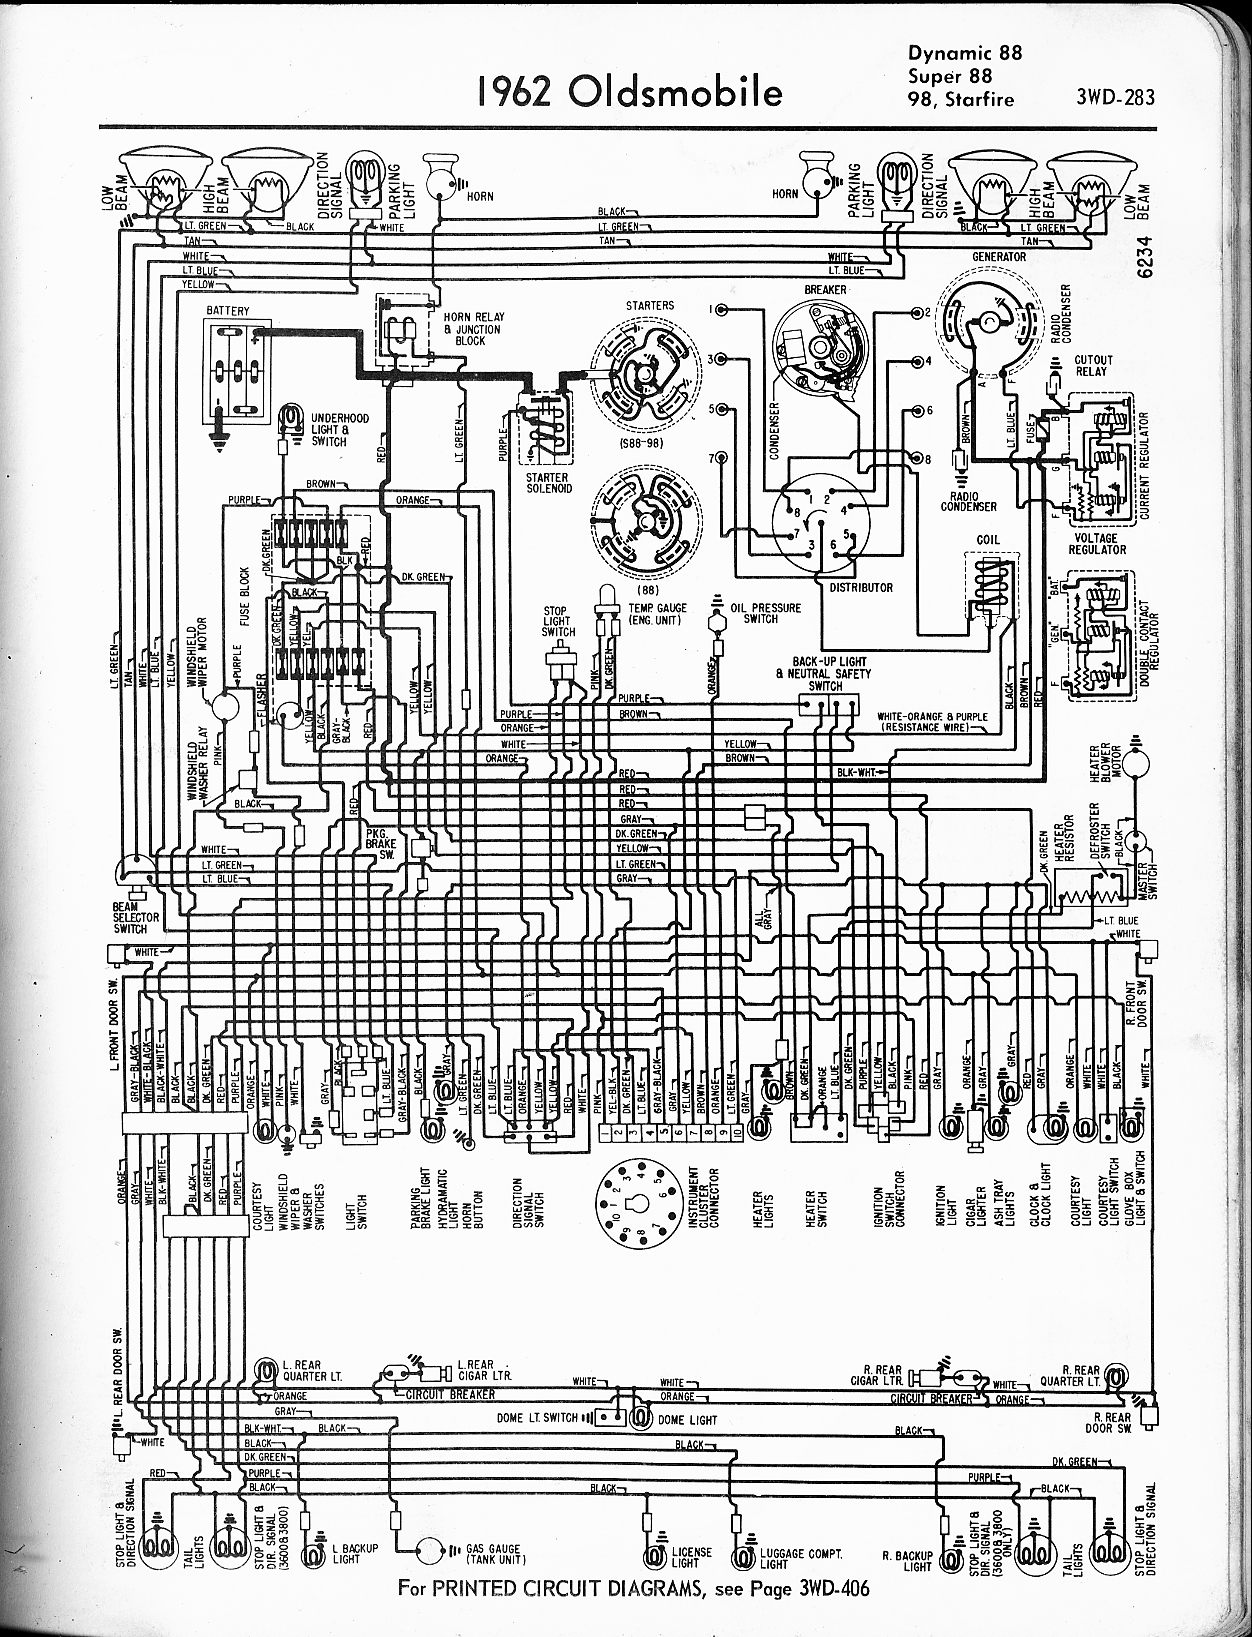 MWire5765 283 oldsmobile wiring diagrams the old car manual project 1967 olds 442 wiring diagram at soozxer.org